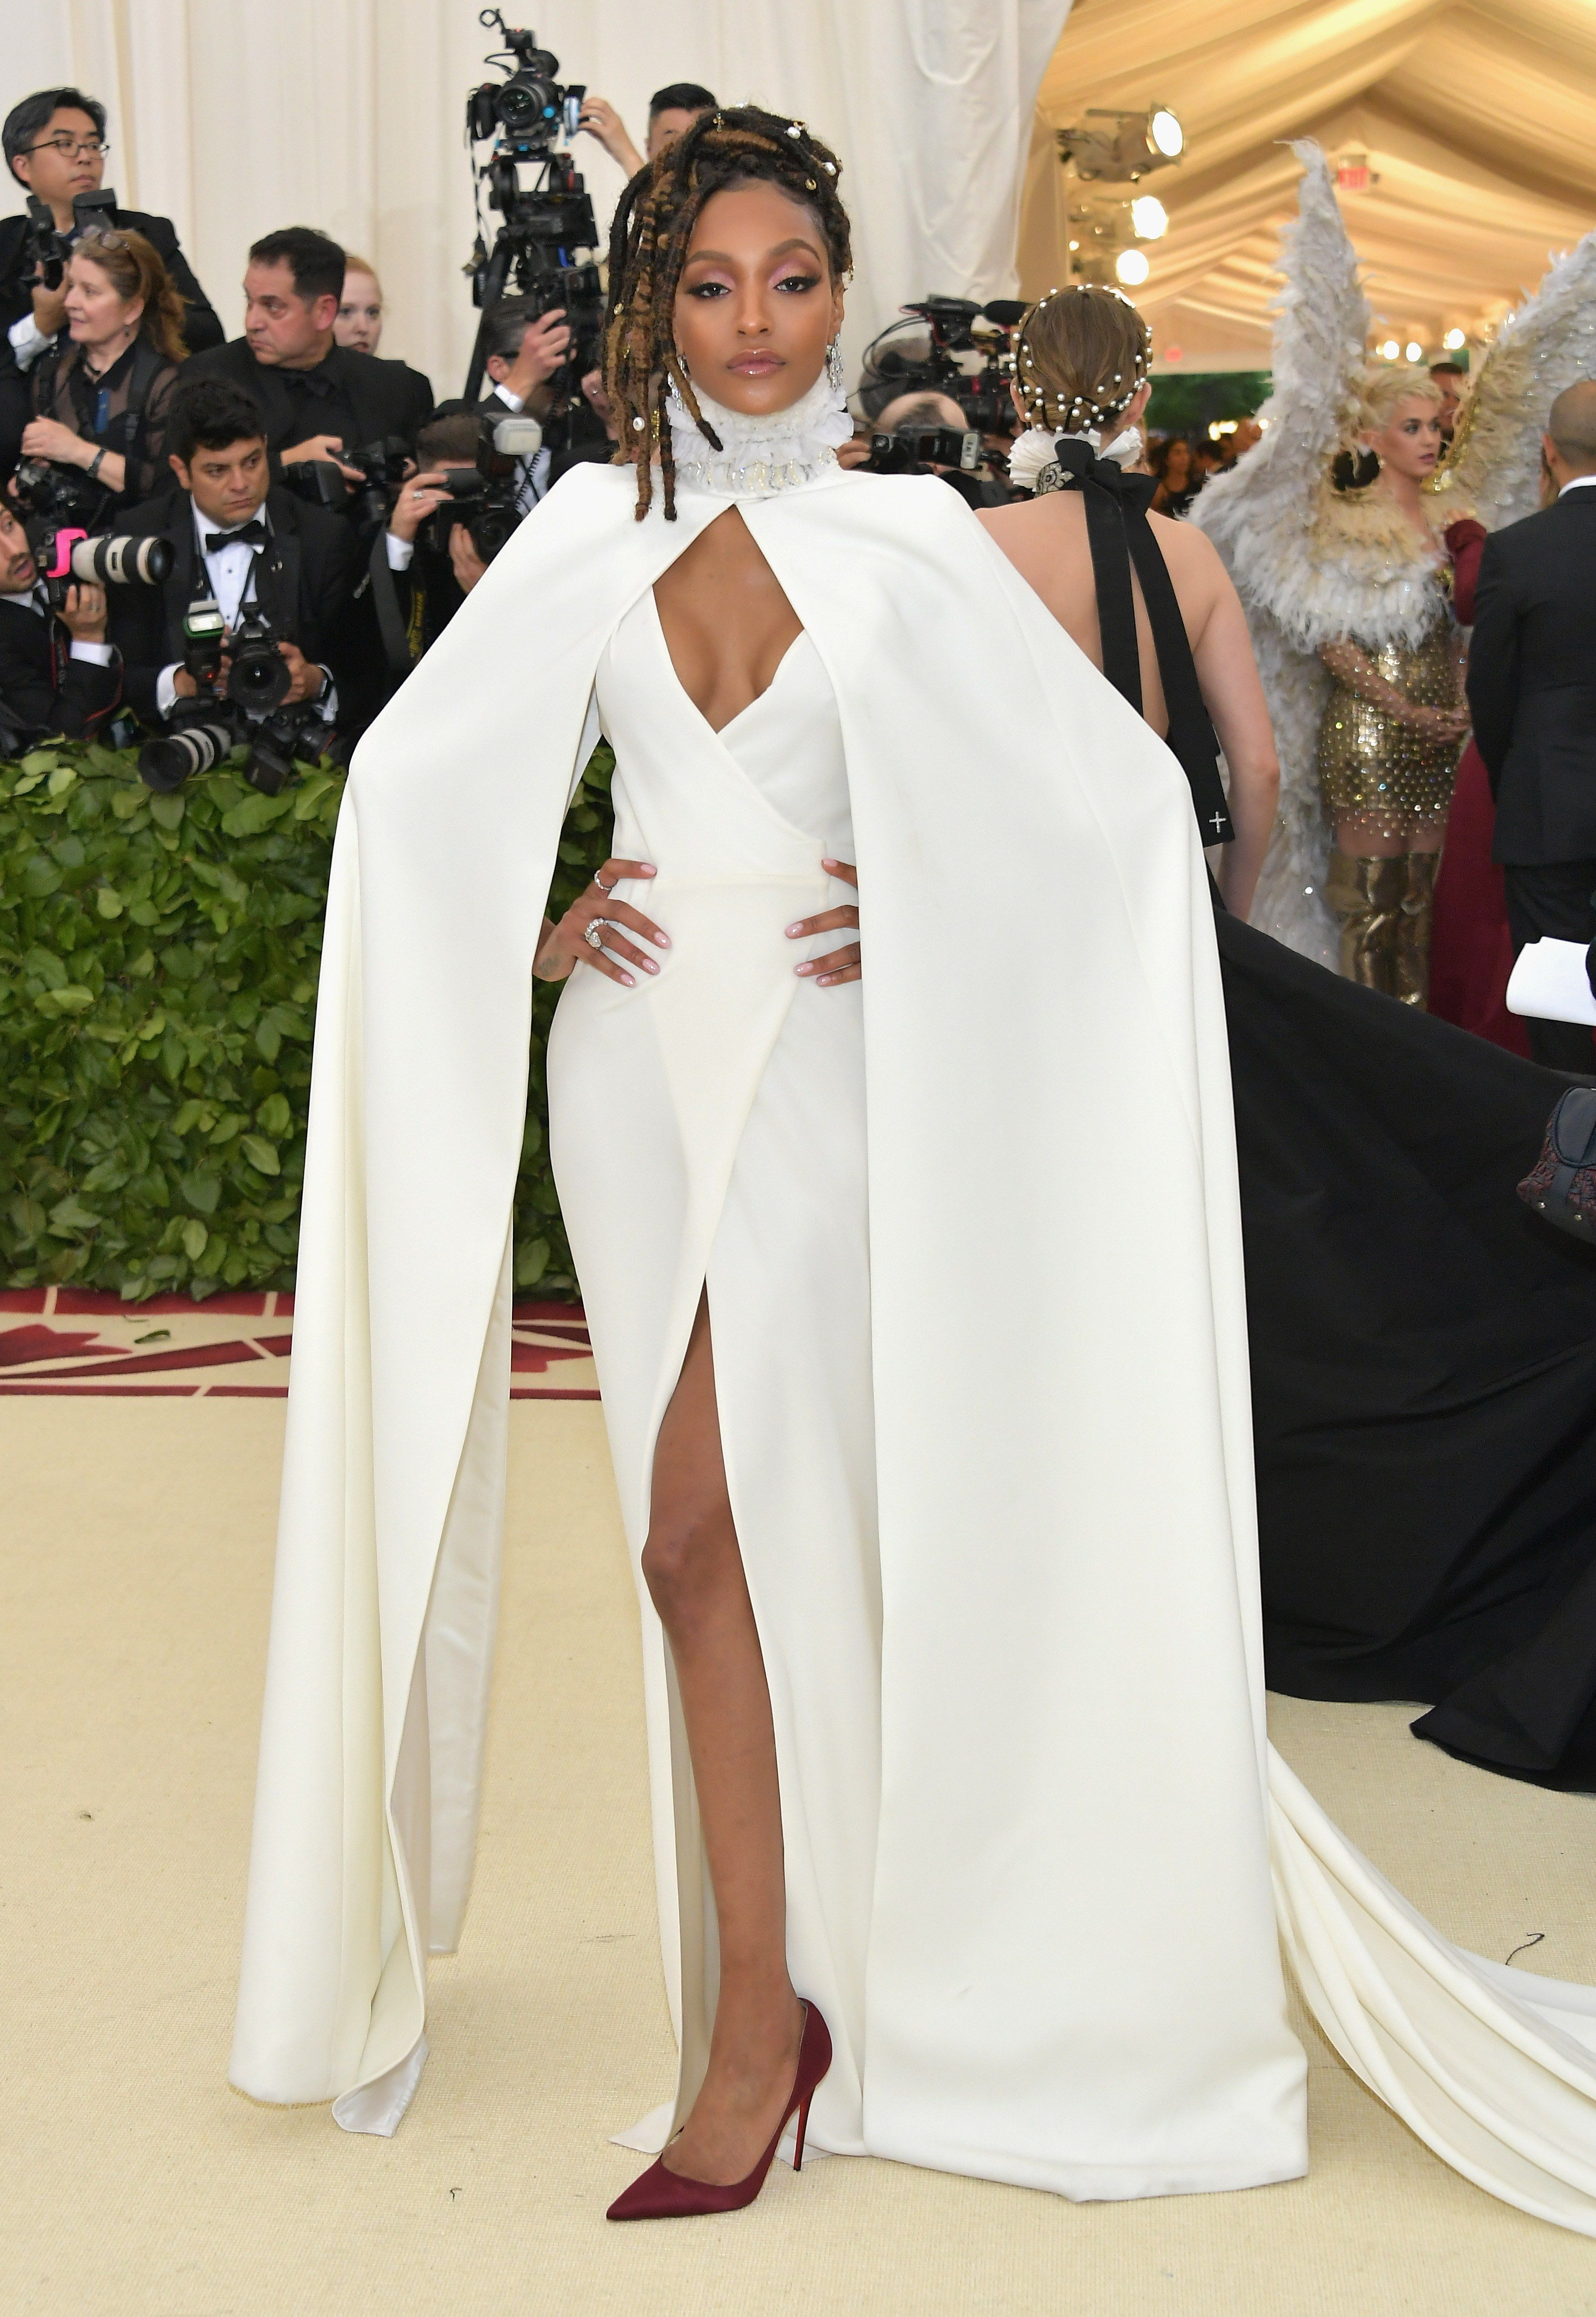 faa2a6ff7e The Met Gala 2018 is fashion s biggest night. See every red carpet look  from your favorite celebrities and designers at the Metropolitan Museum of  Art.